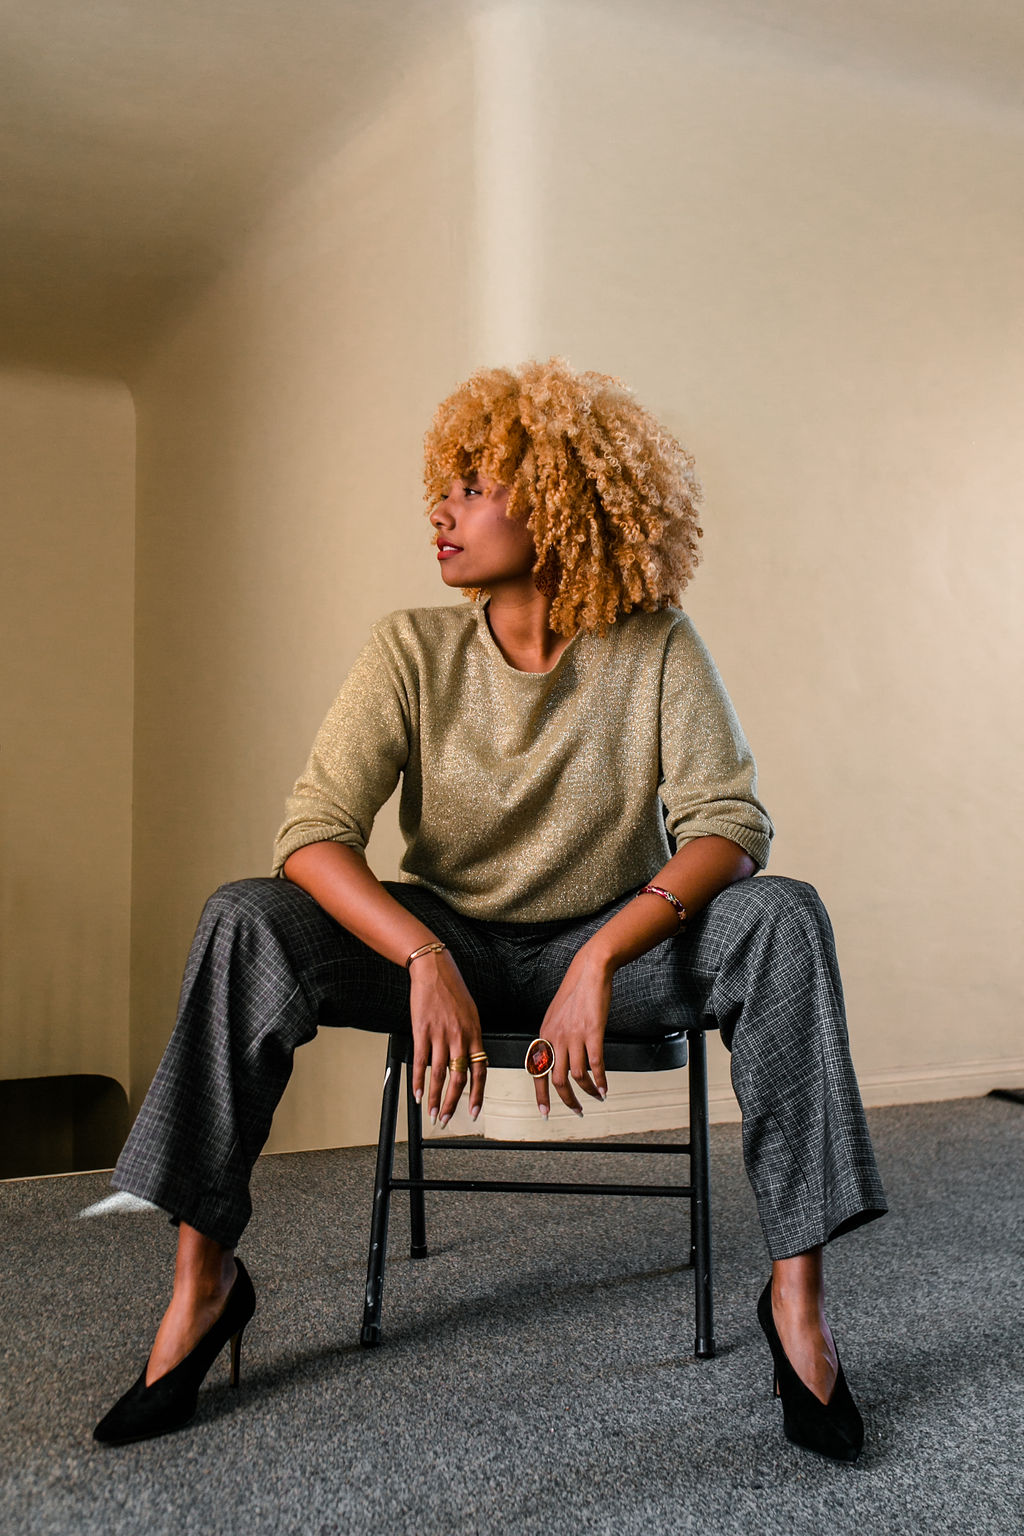 reflect -RSEE-LCM-Liveclothesminded-xmmtt-longbeach-2280-wear who you are-slacks-gold sweater-blonde curls-how to wear slacks-7 big moments